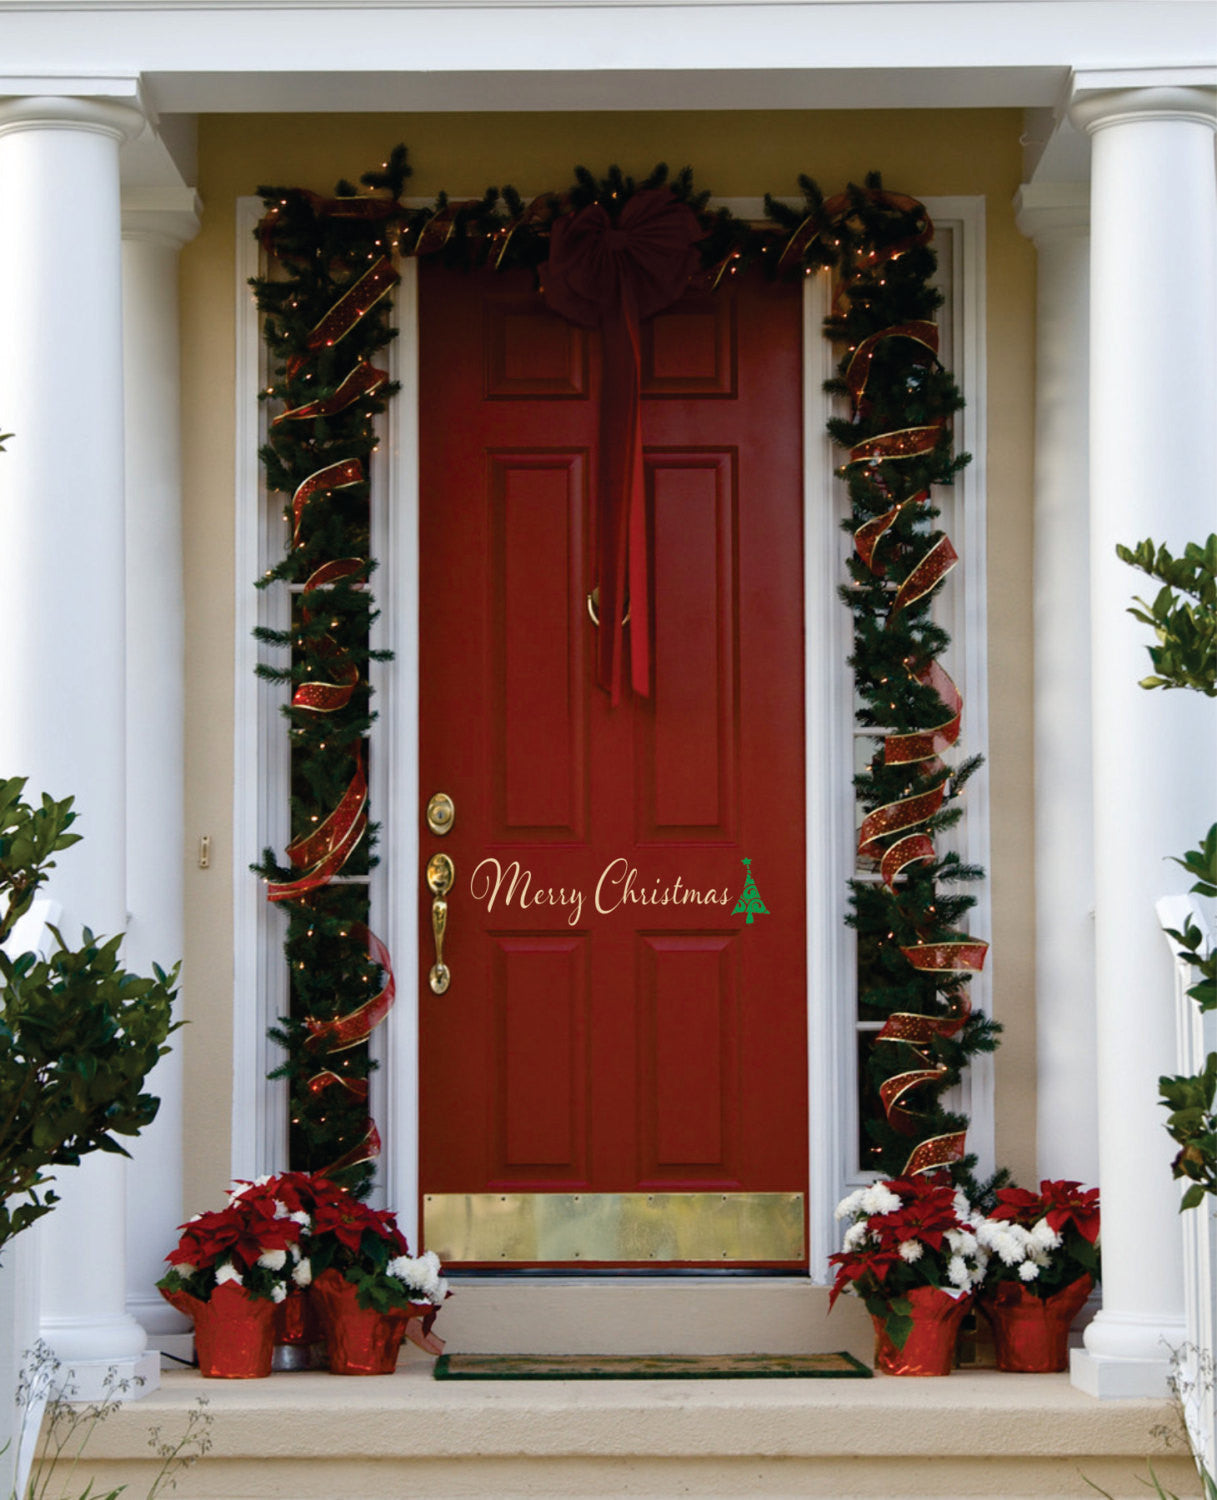 Merry Christmas with Tree Door Vinyl Decal